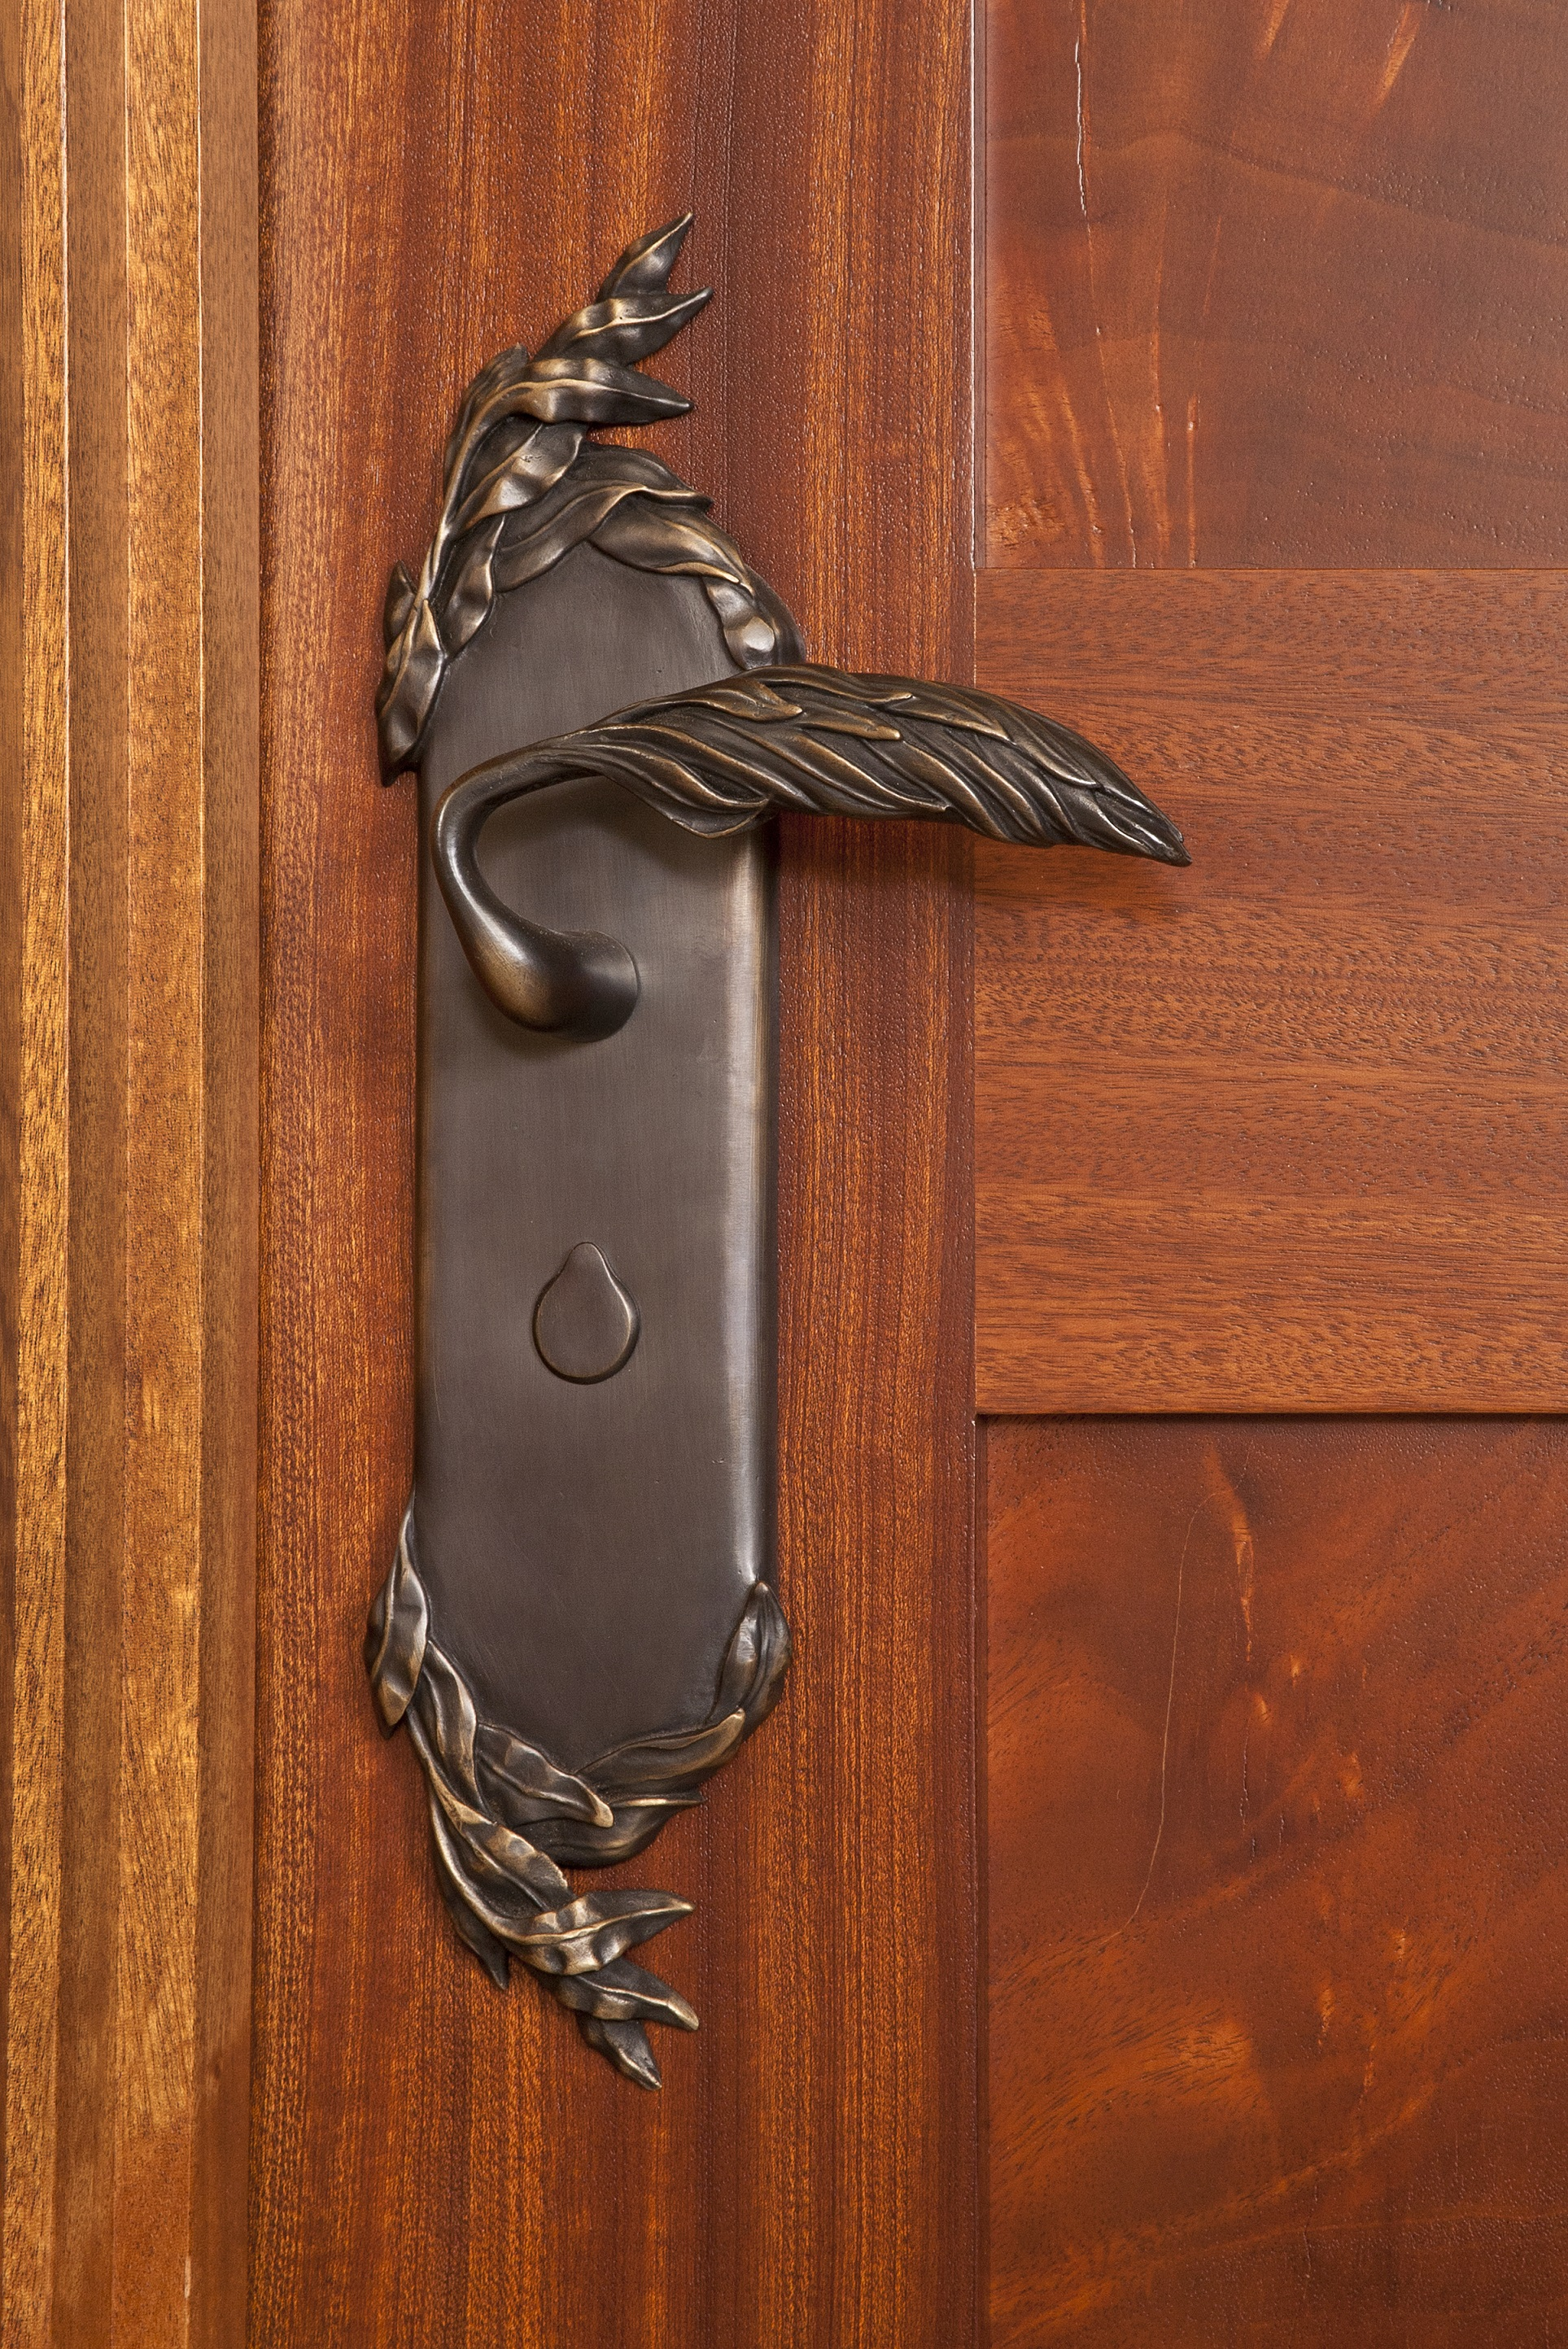 Unique Door Handles For Inspired New Home